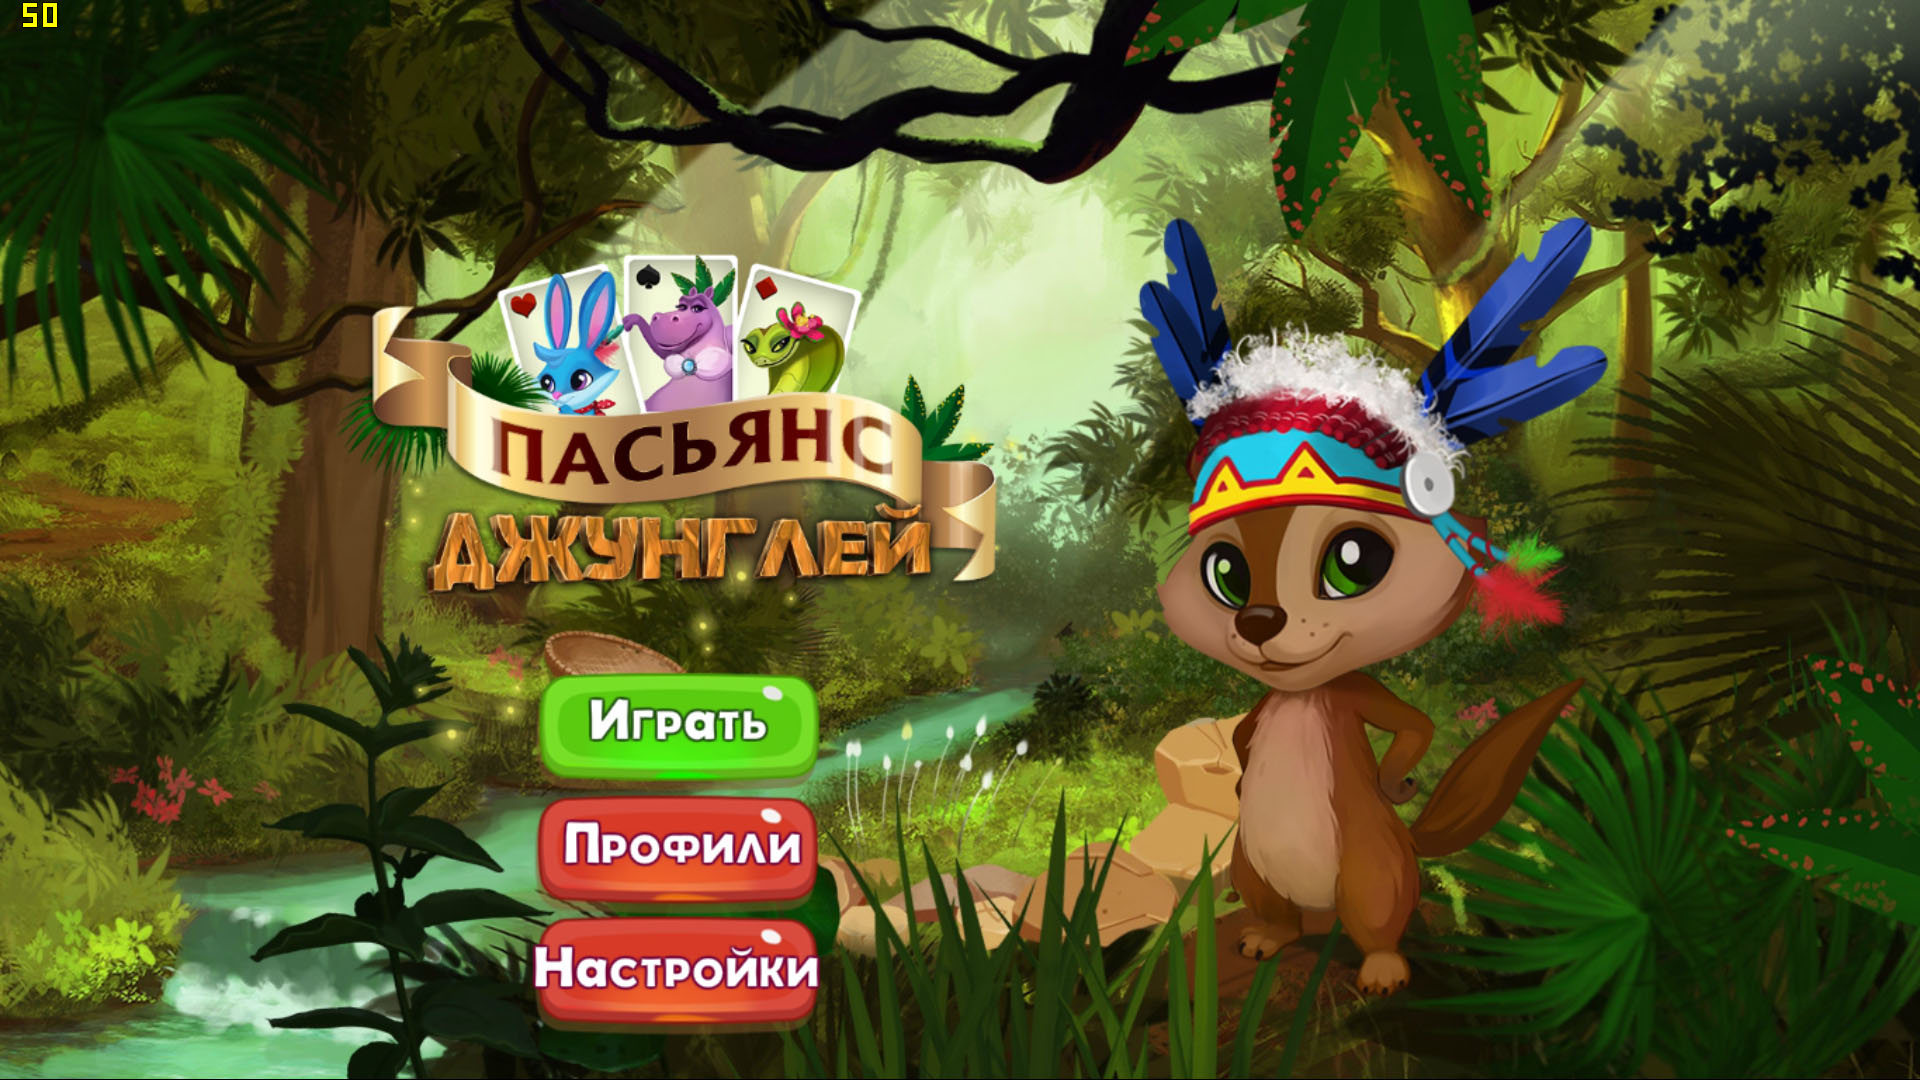 Пасьянс джунглей | Rainforest Solitaire 2 (Rus)